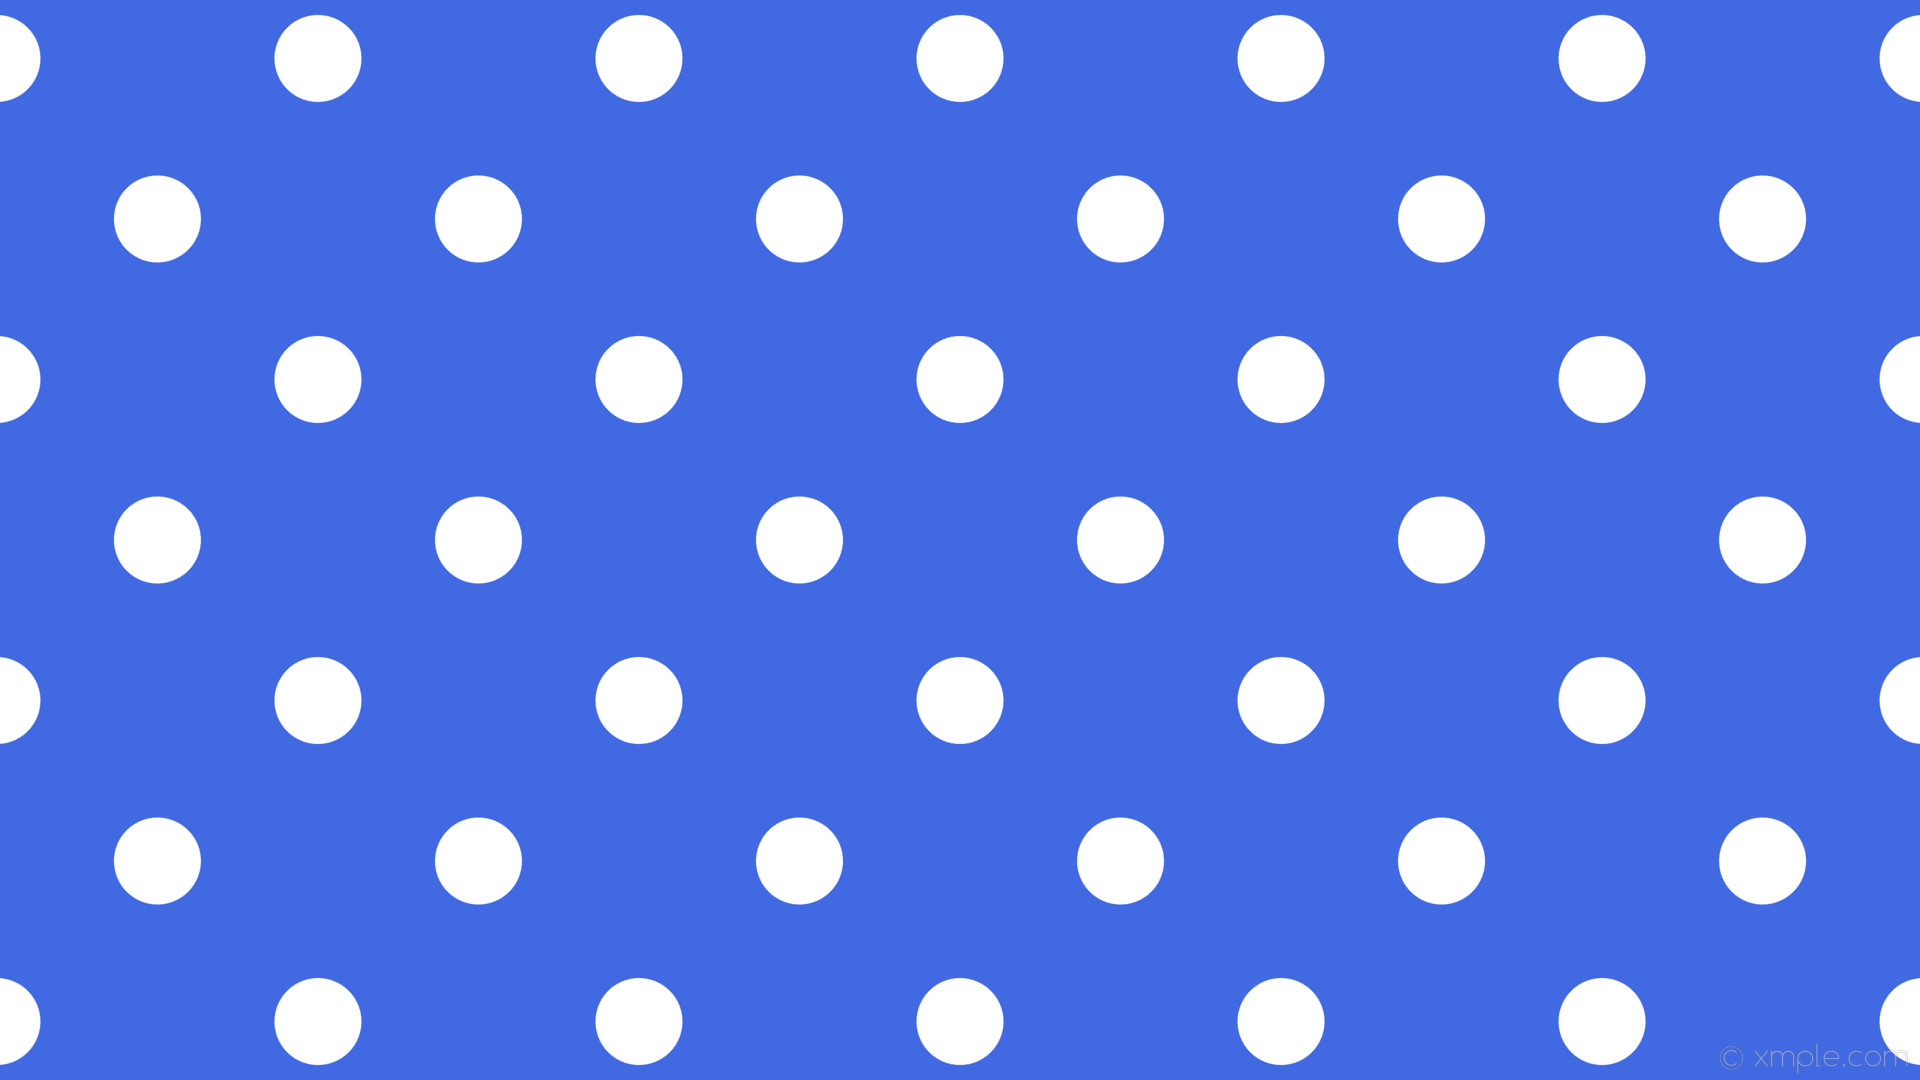 wallpaper dots polka white spots blue royal blue #4169e1 #ffffff 315° 87px  227px